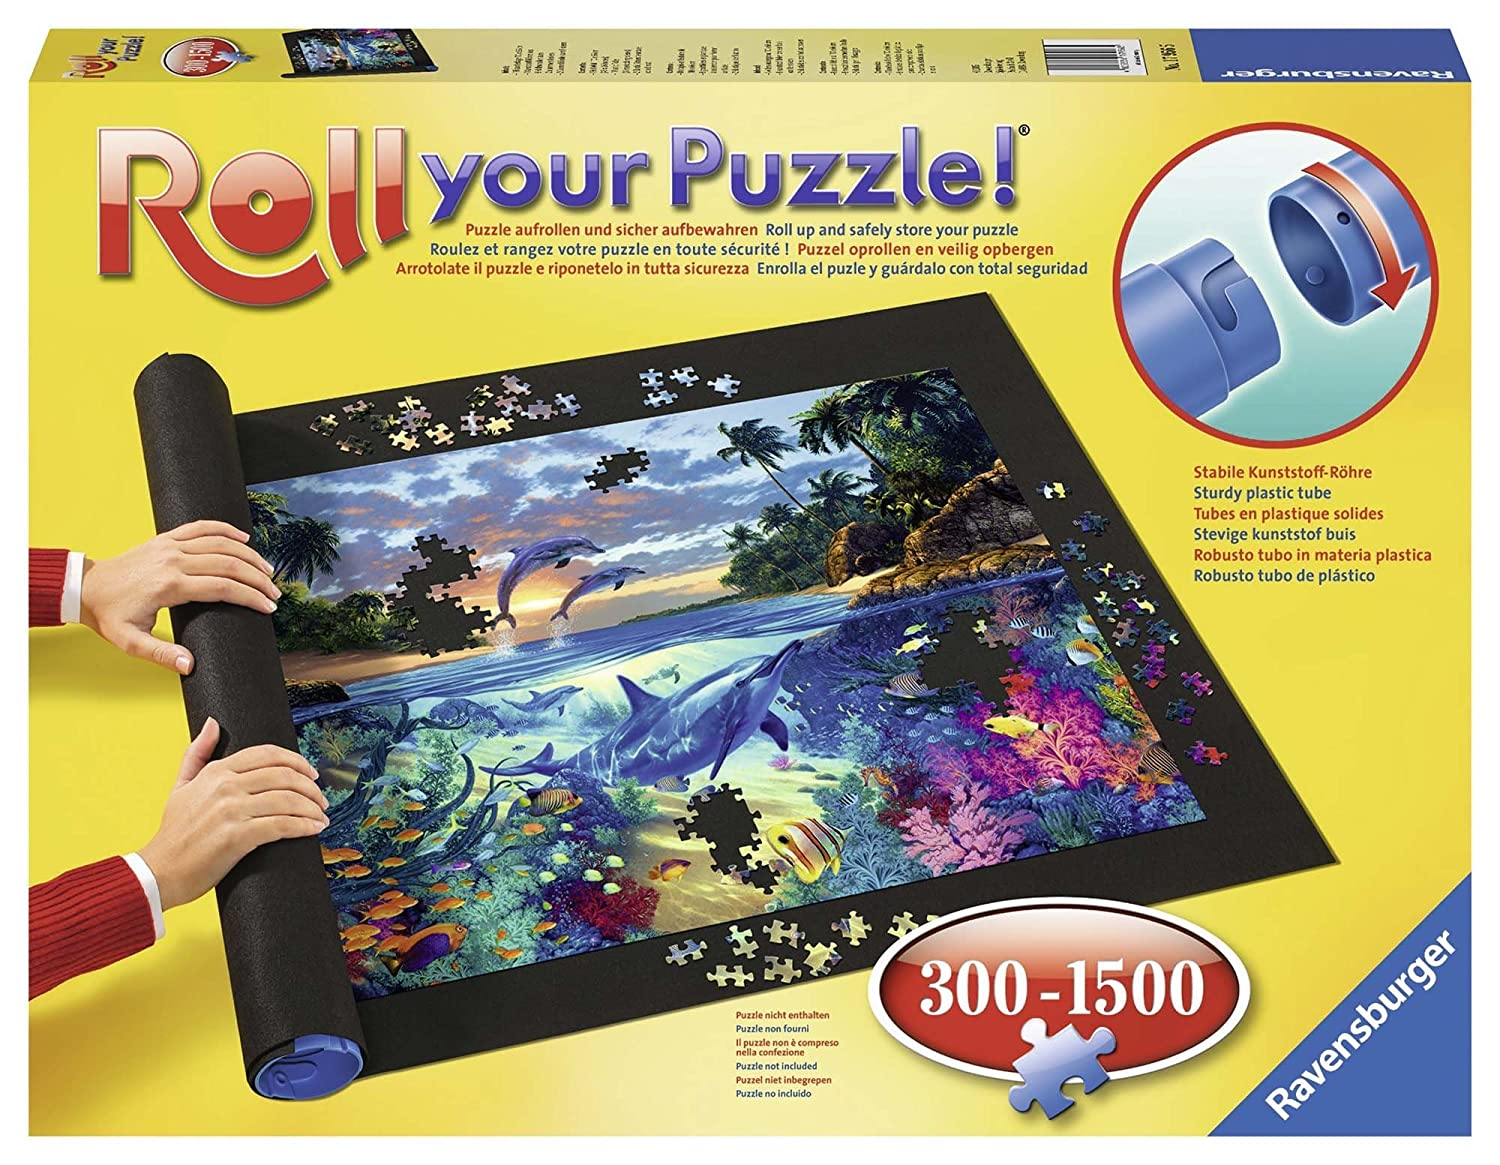 Ravensburger 17956 5 Roll Your Puzzle